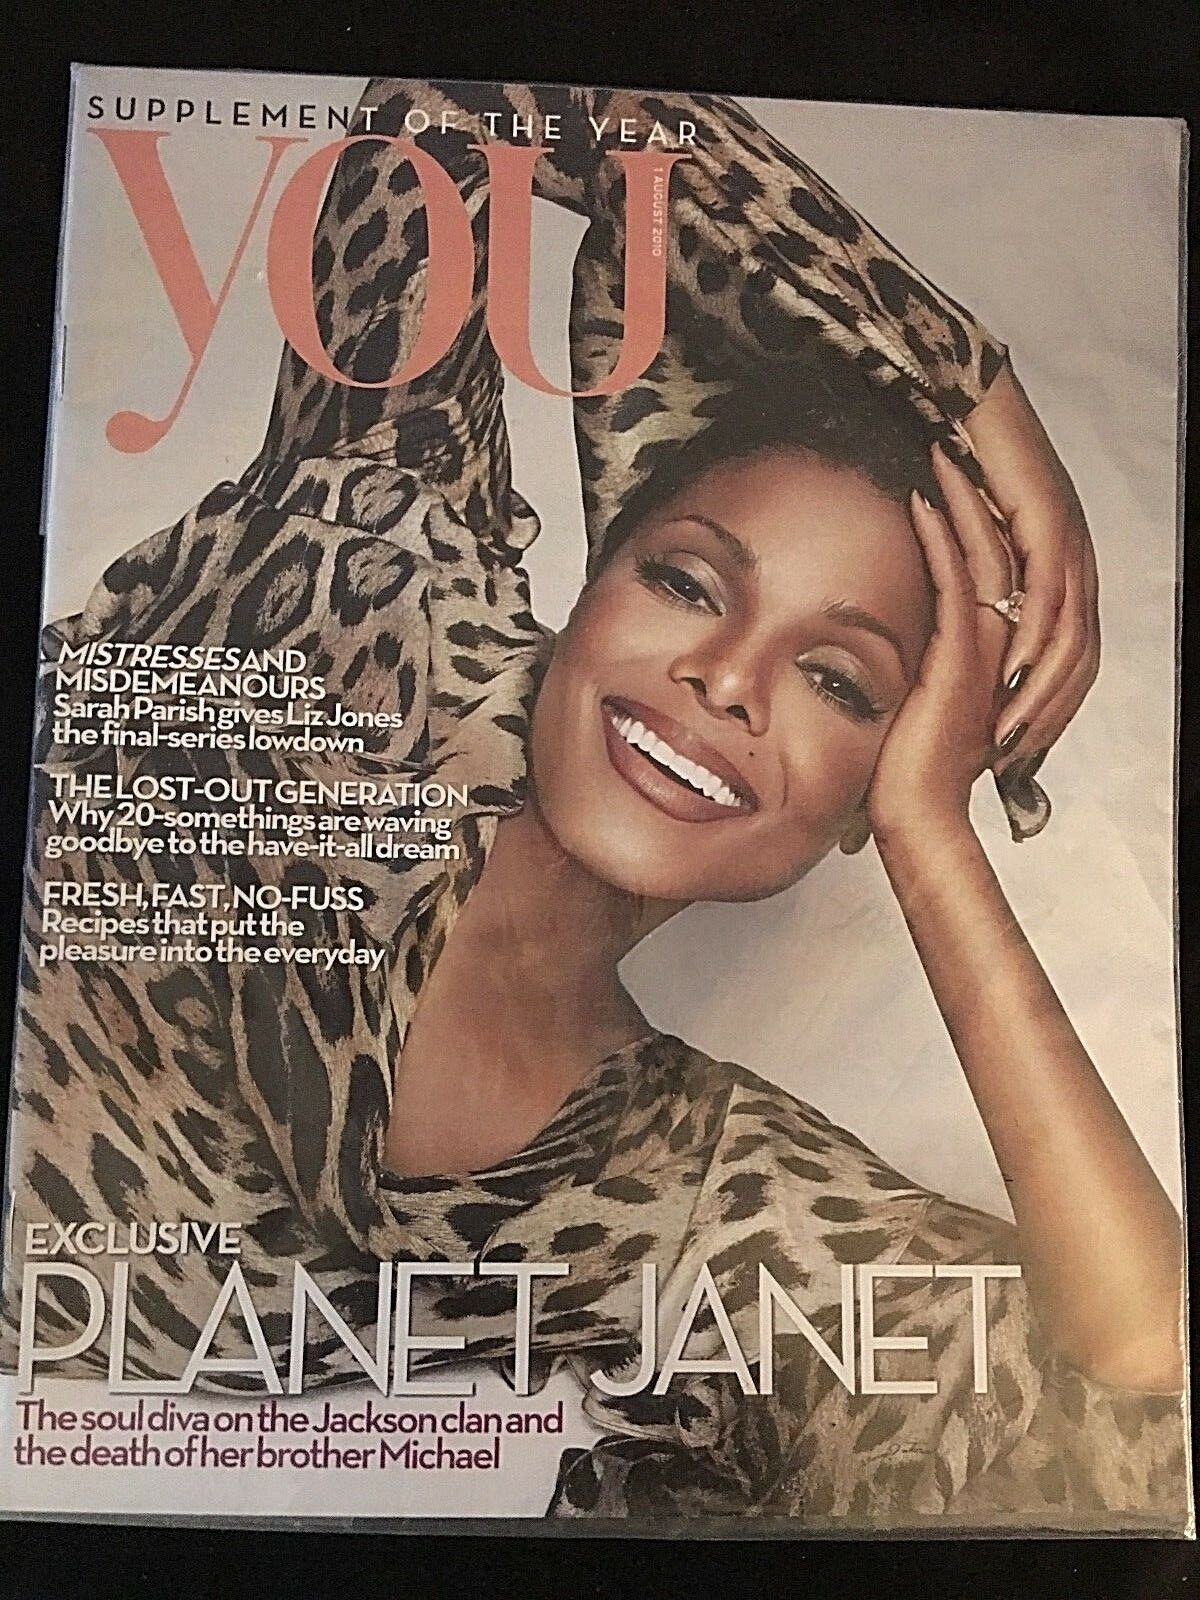 UK JANET JACKSON COVER STORY AUG  1 2010 YOU MAGAZINE